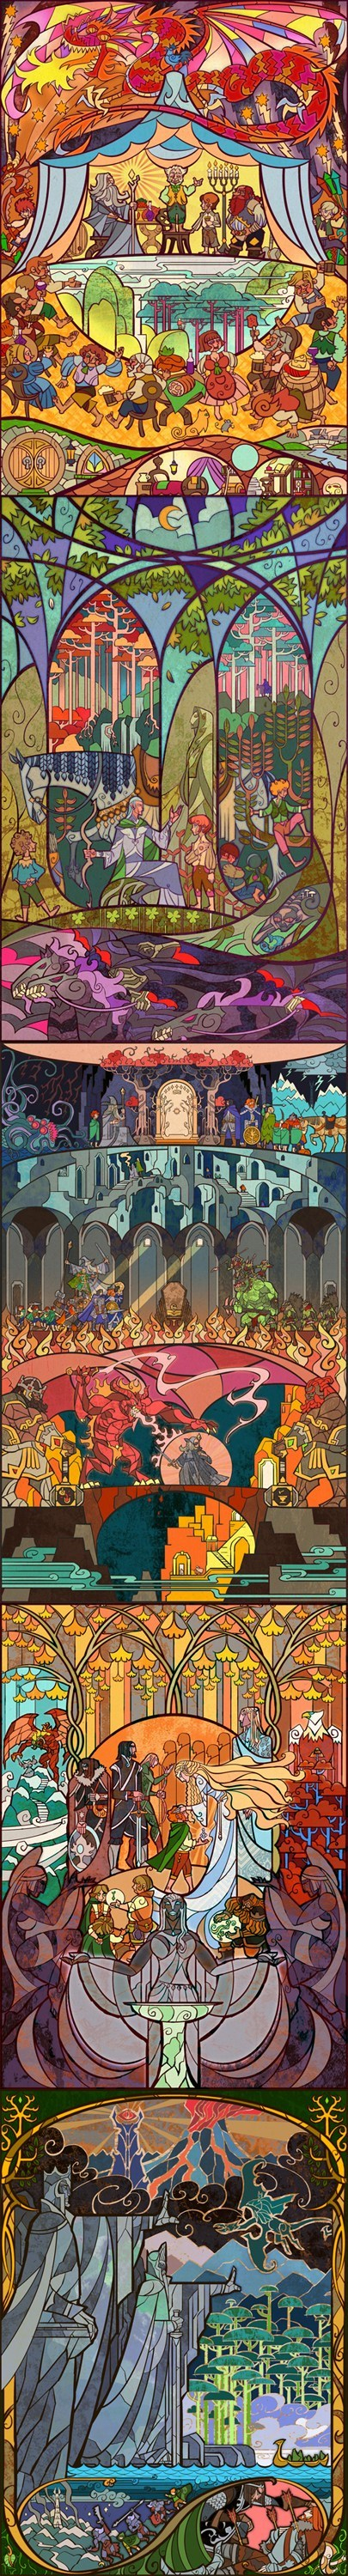 "Stained Glass ""Lord of the Rings"" Art"